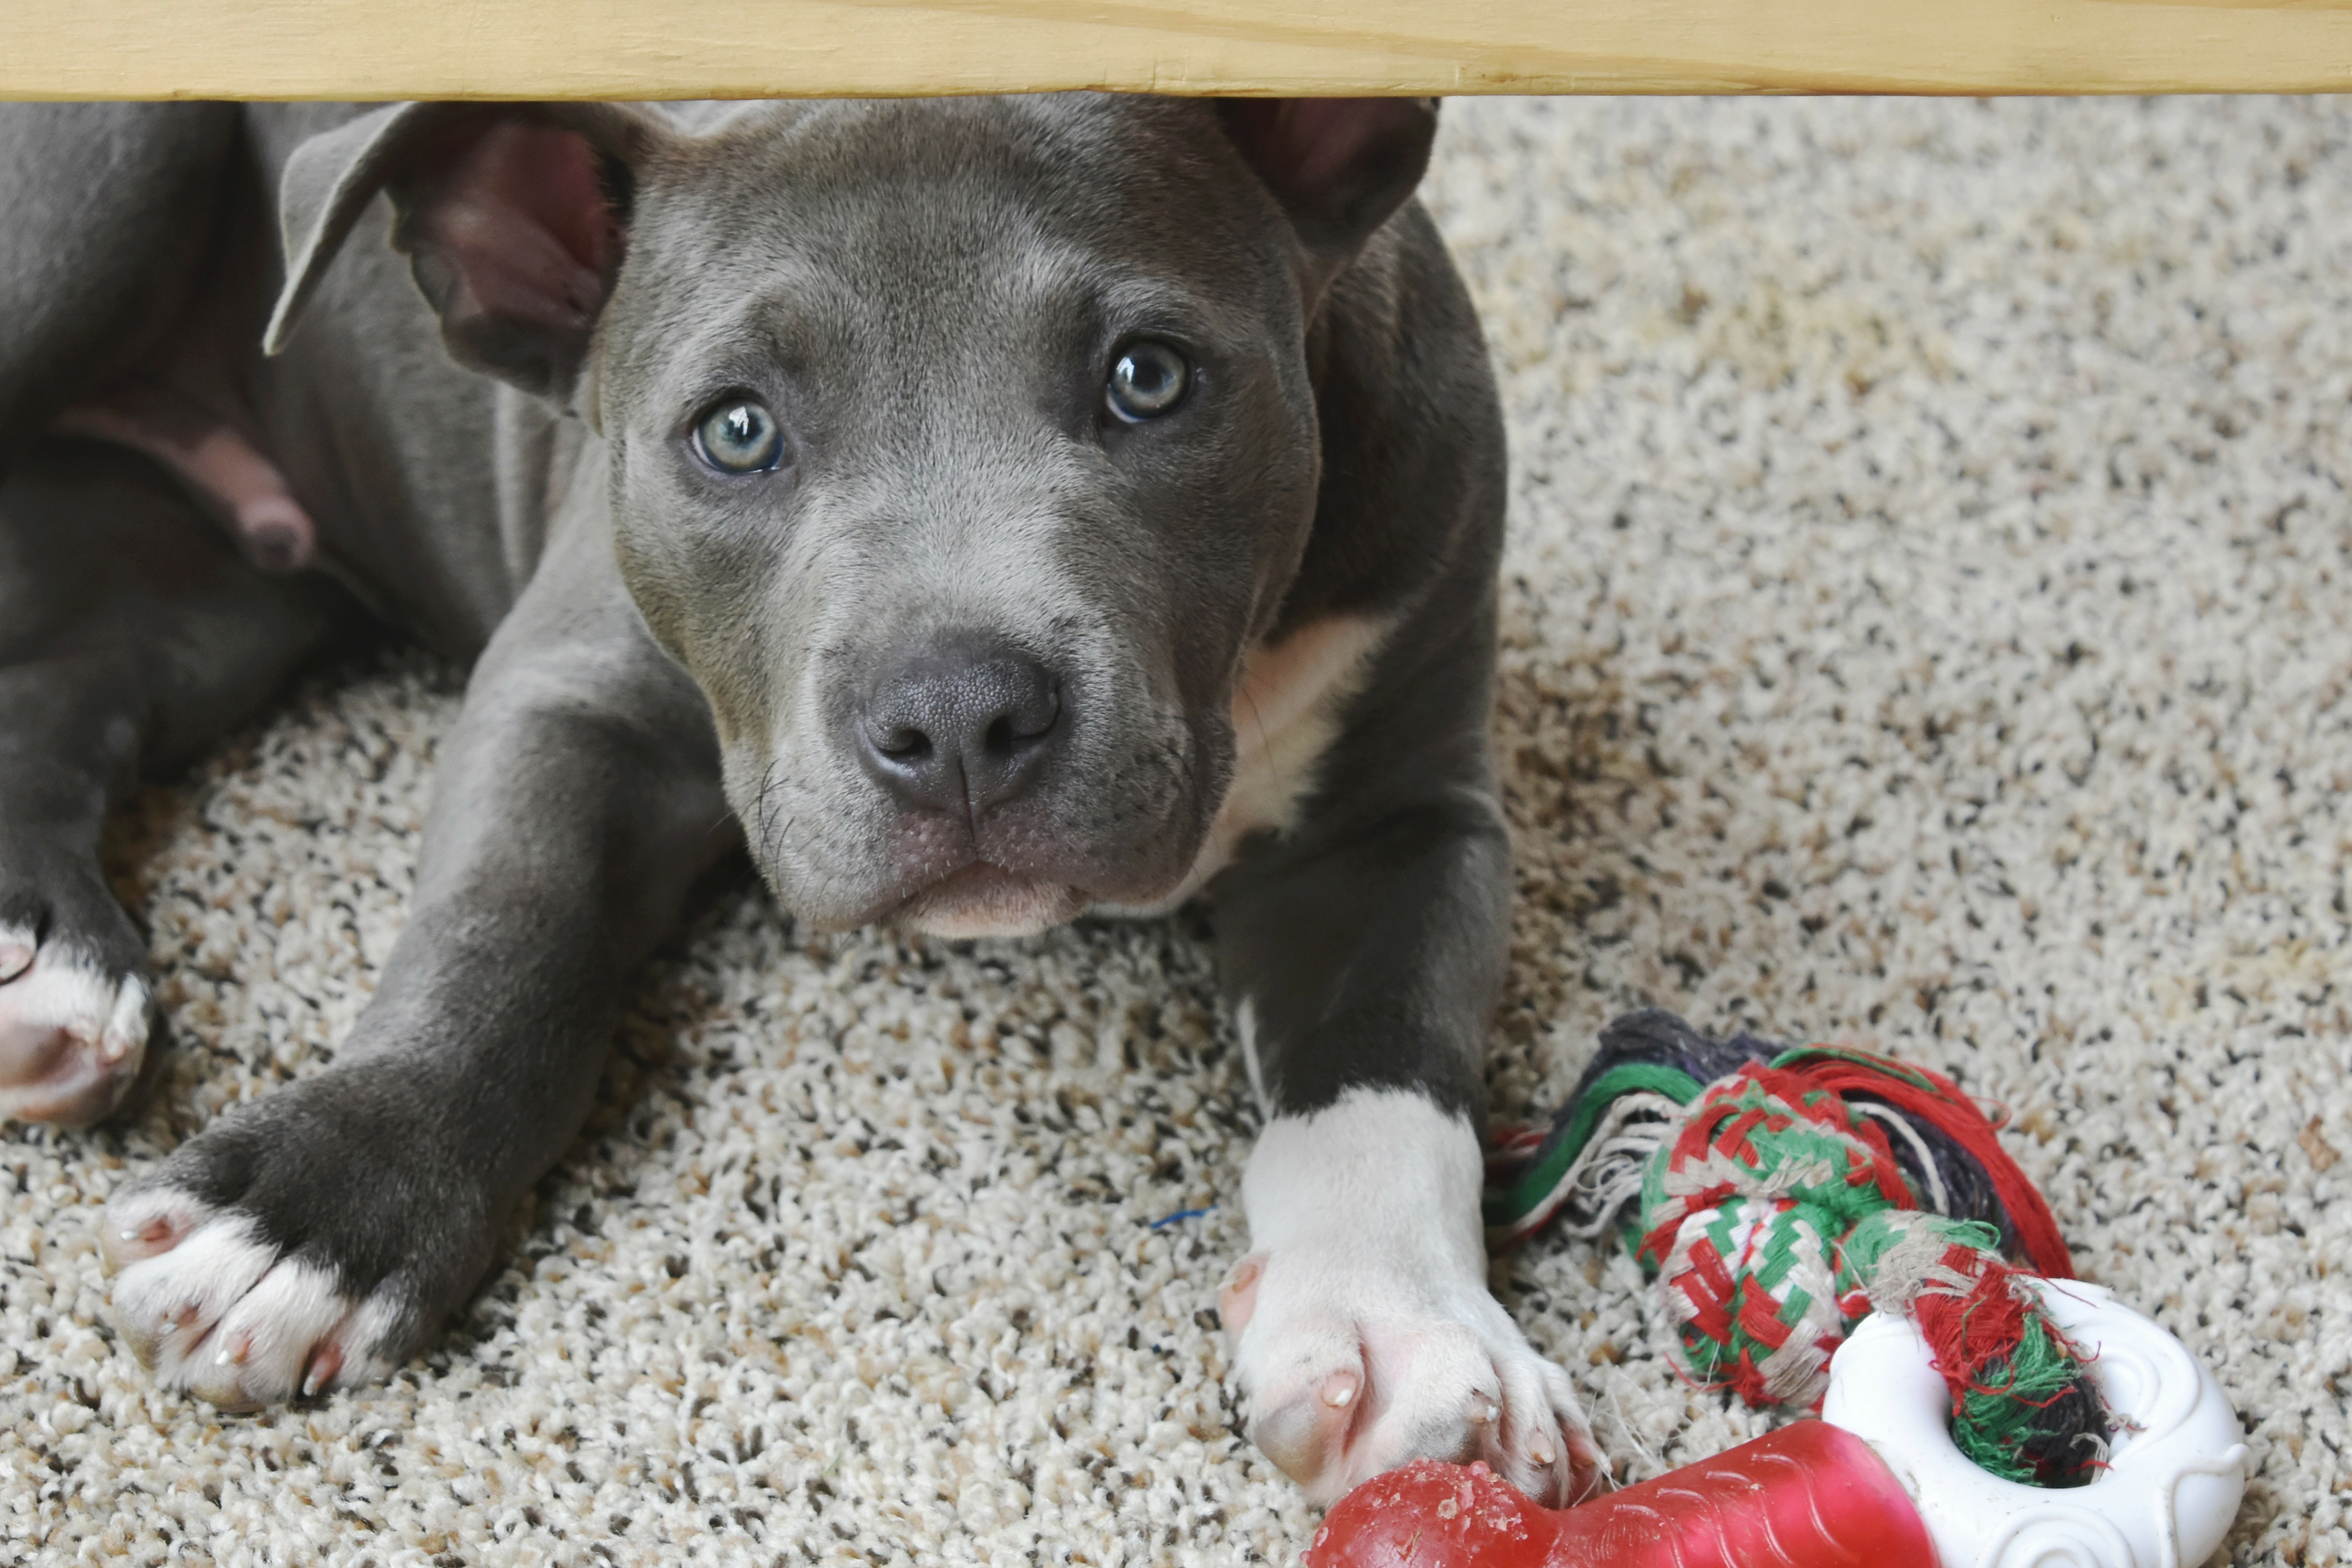 New puppy? Now's the time to consider pet insurance.